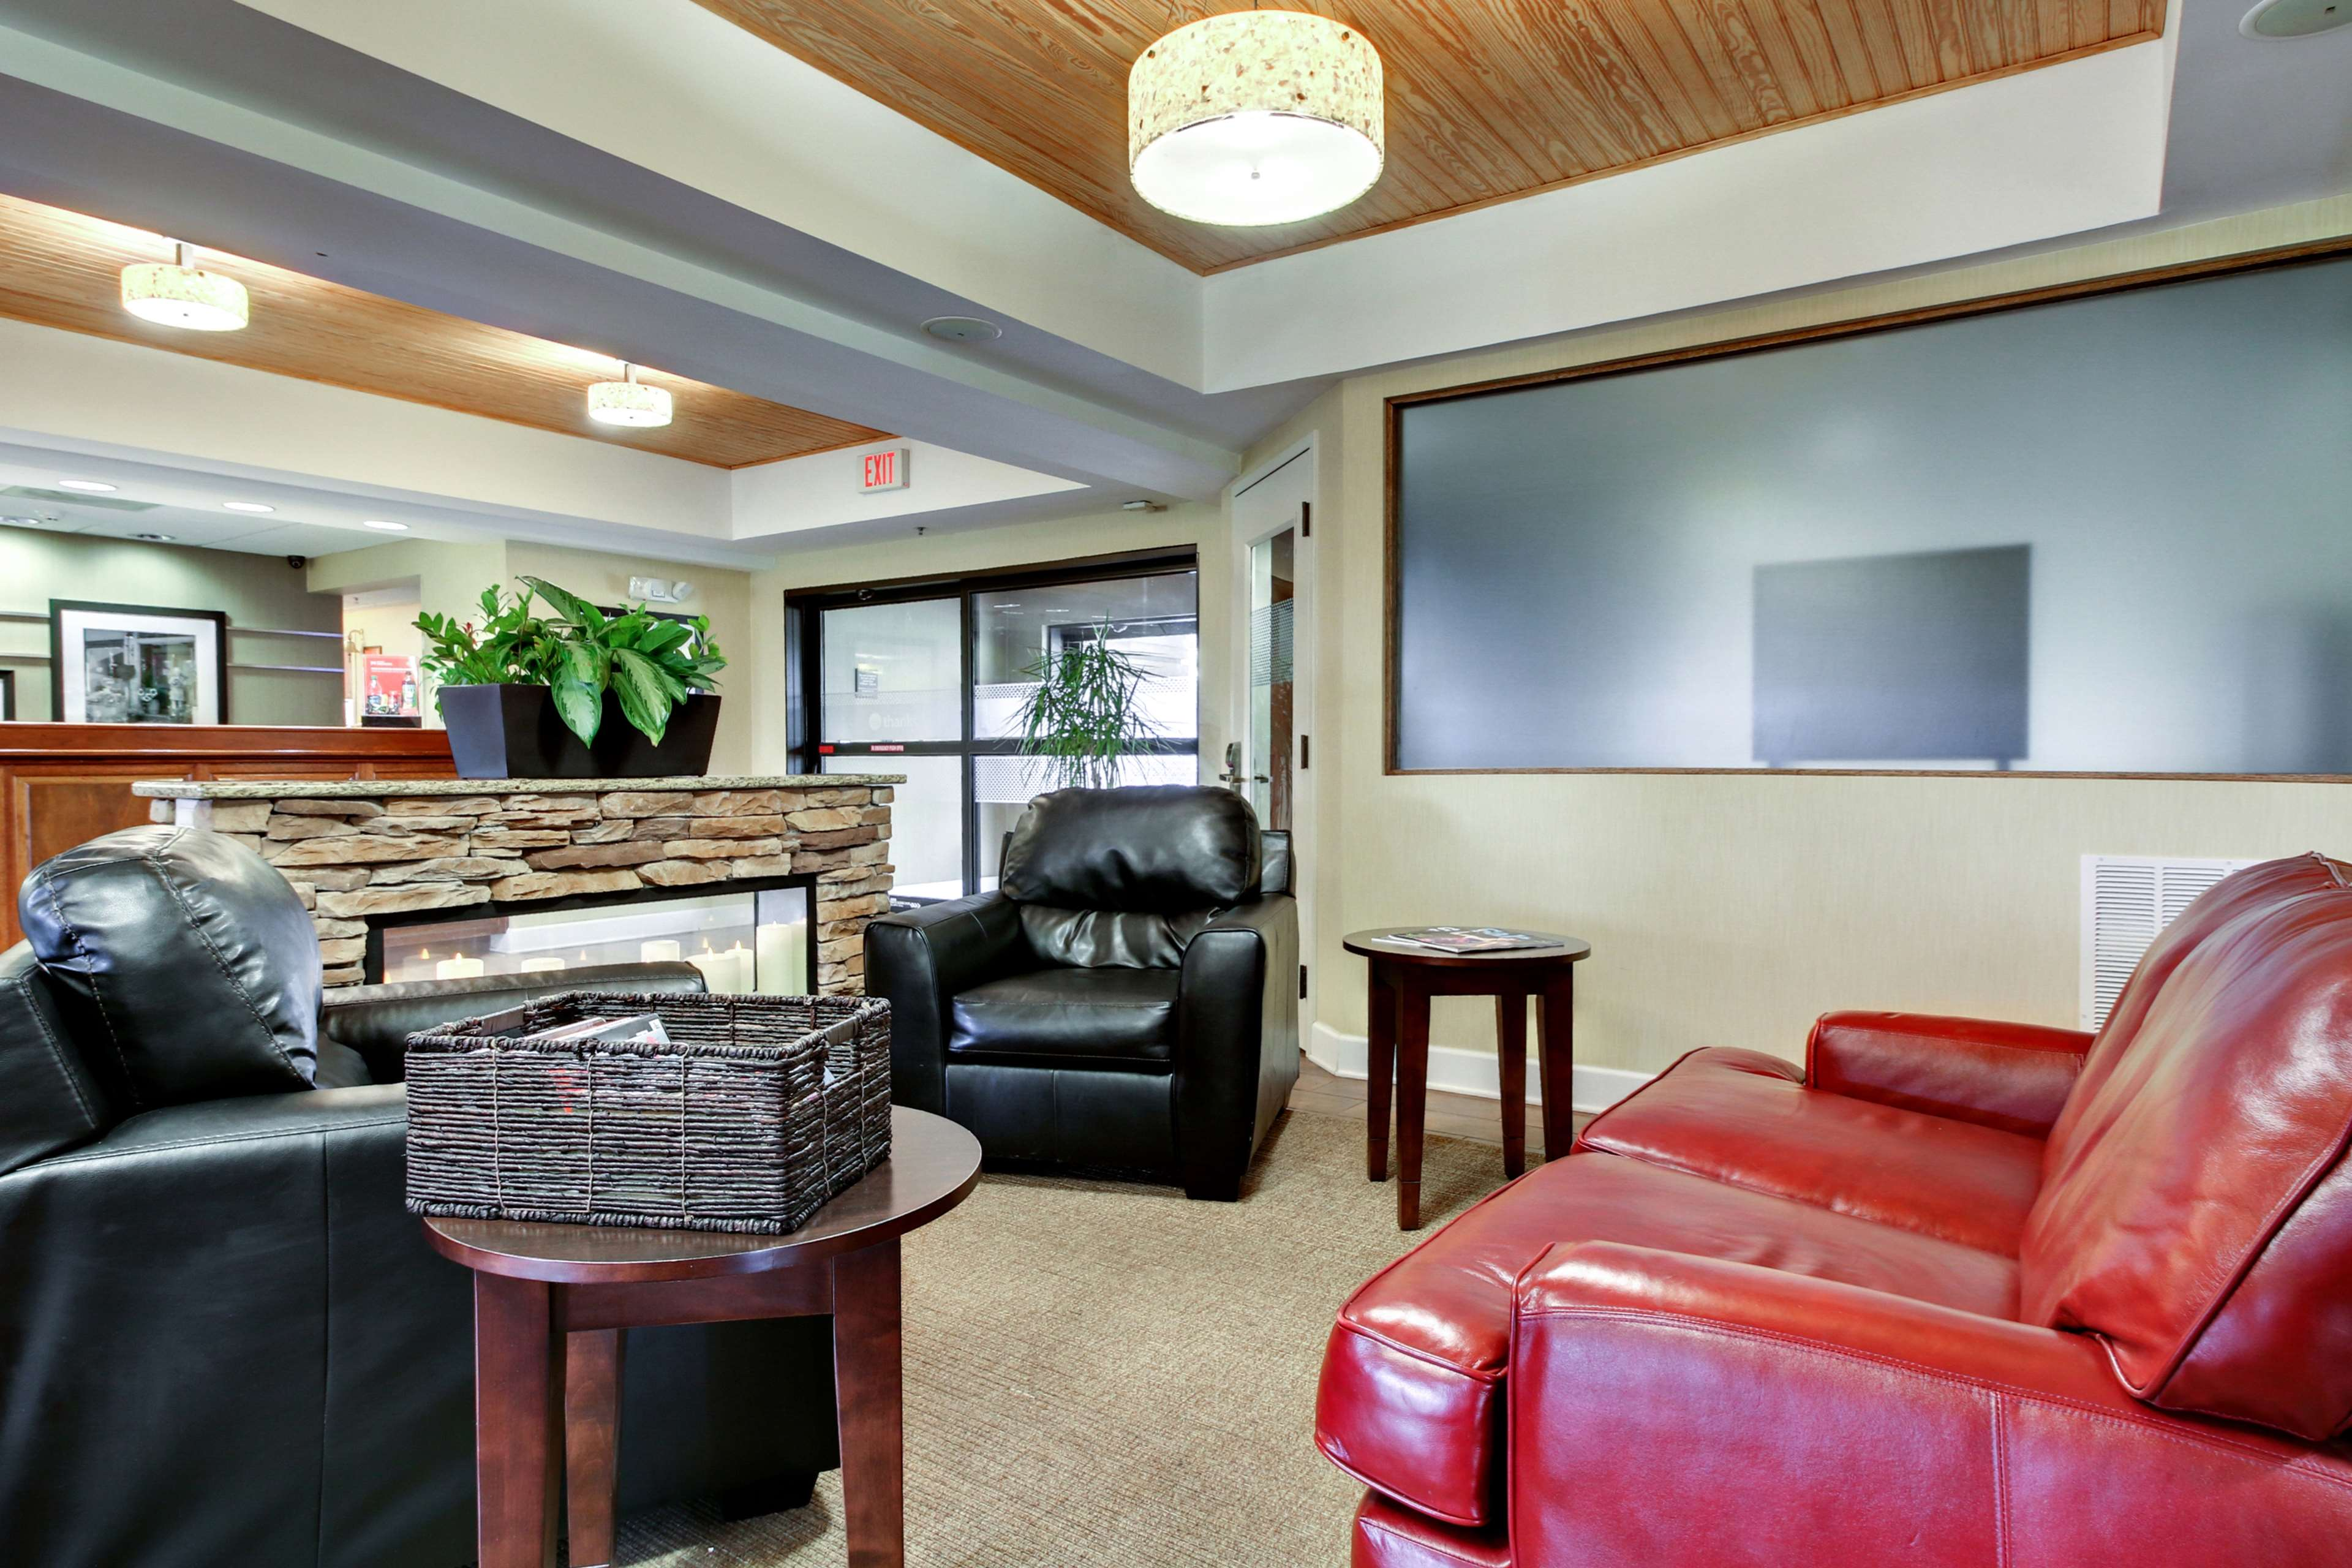 hampton inn southport coupons near me in southport 8coupons. Black Bedroom Furniture Sets. Home Design Ideas